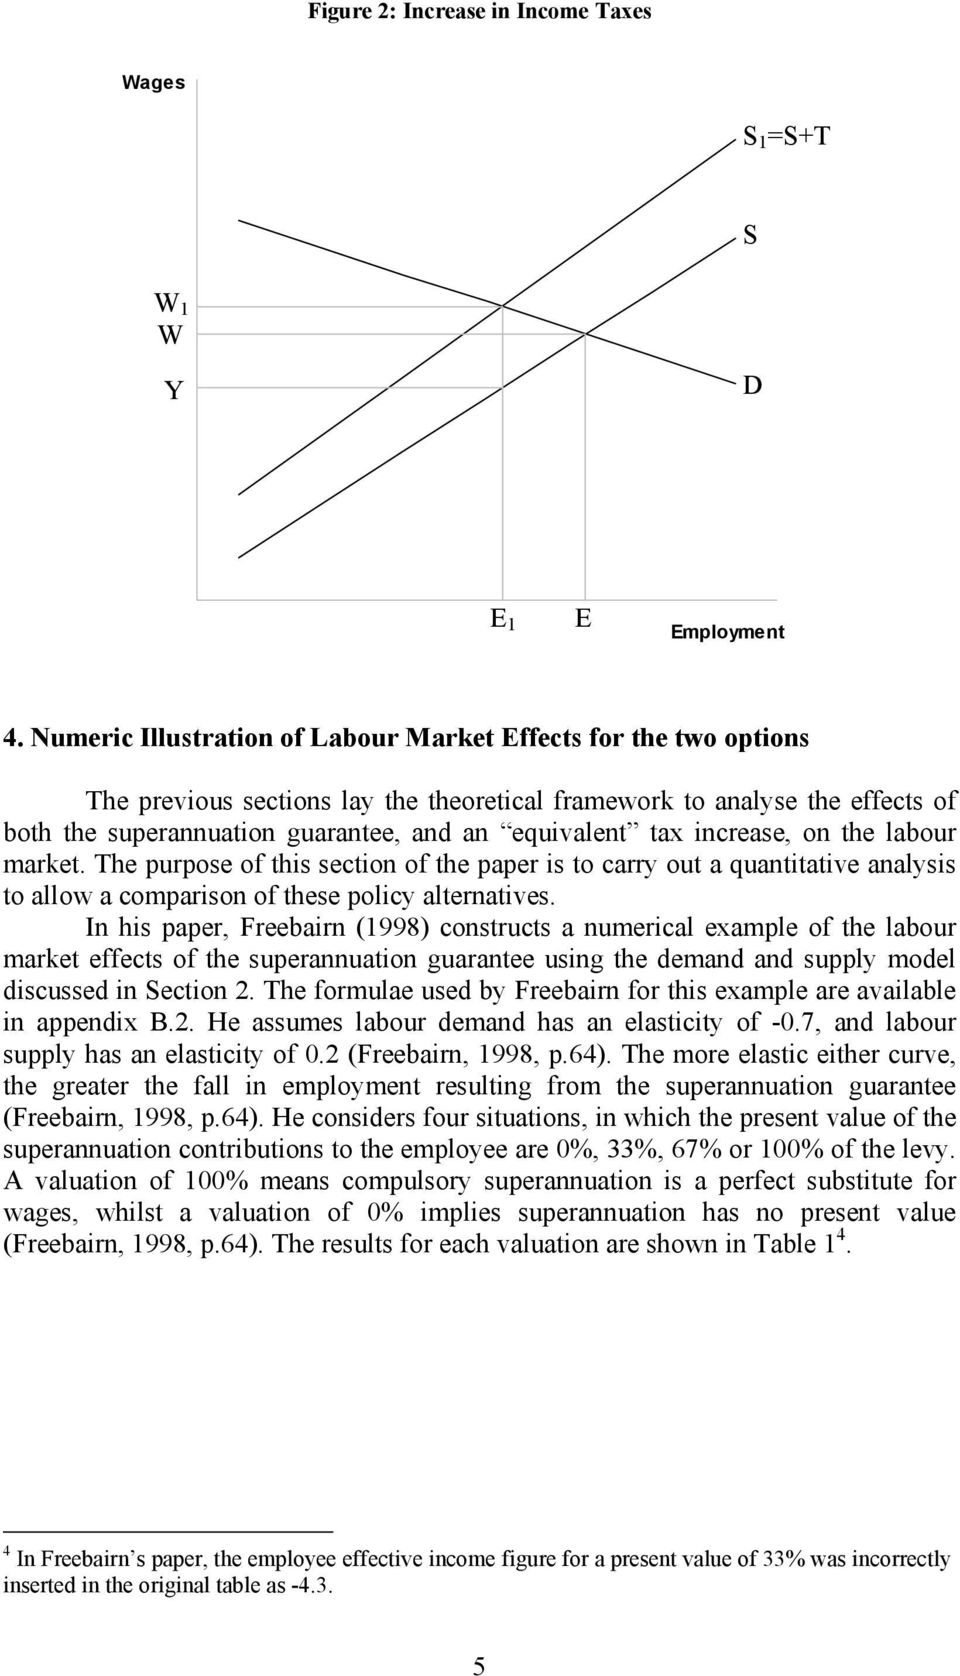 tax increase, on the labour market. The purpose of this section of the paper is to carry out a quantitative analysis to allow a comparison of these policy alternatives.